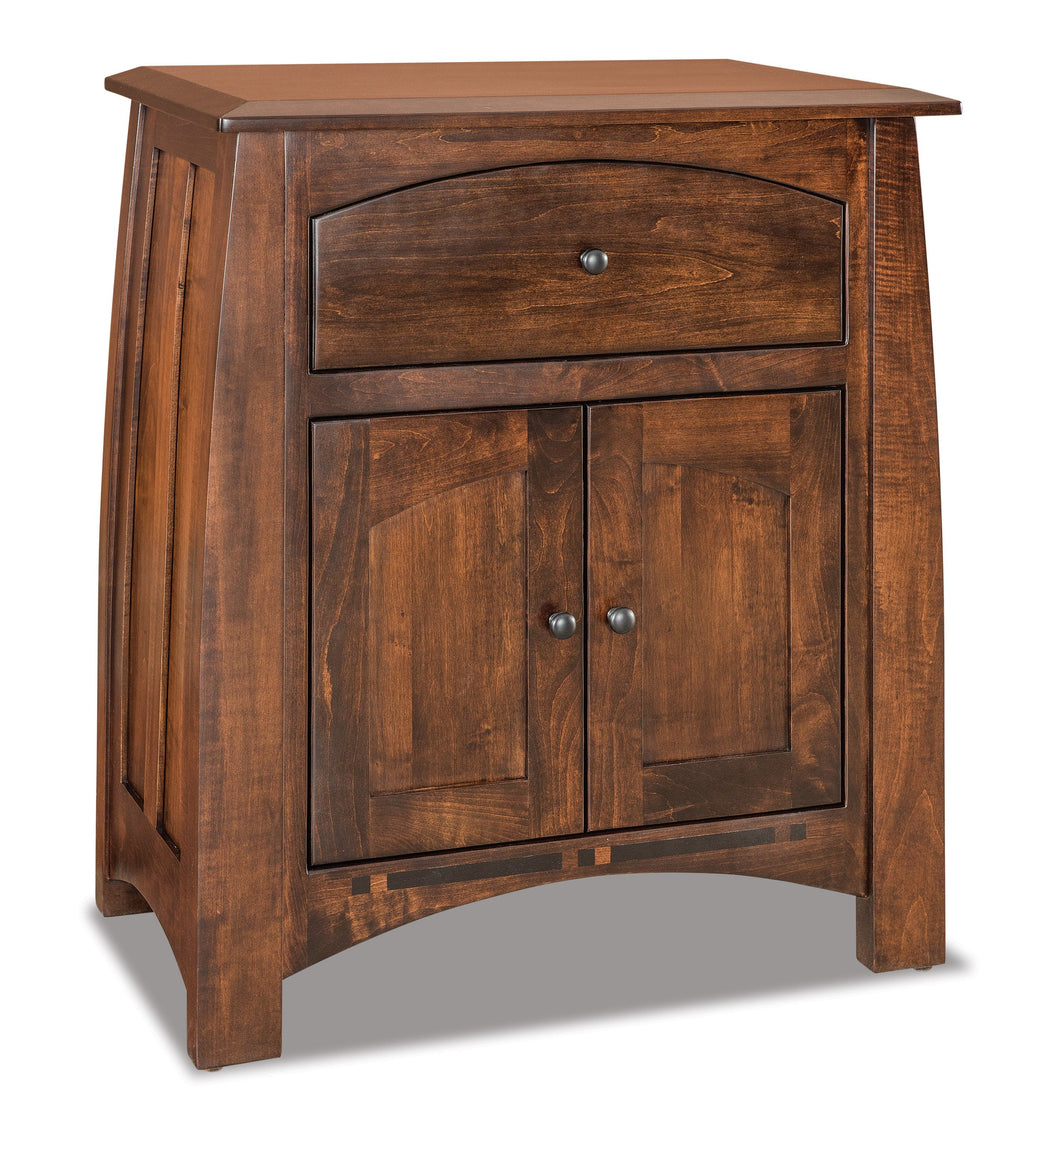 Boulder Creek Nightstand 028-3-5